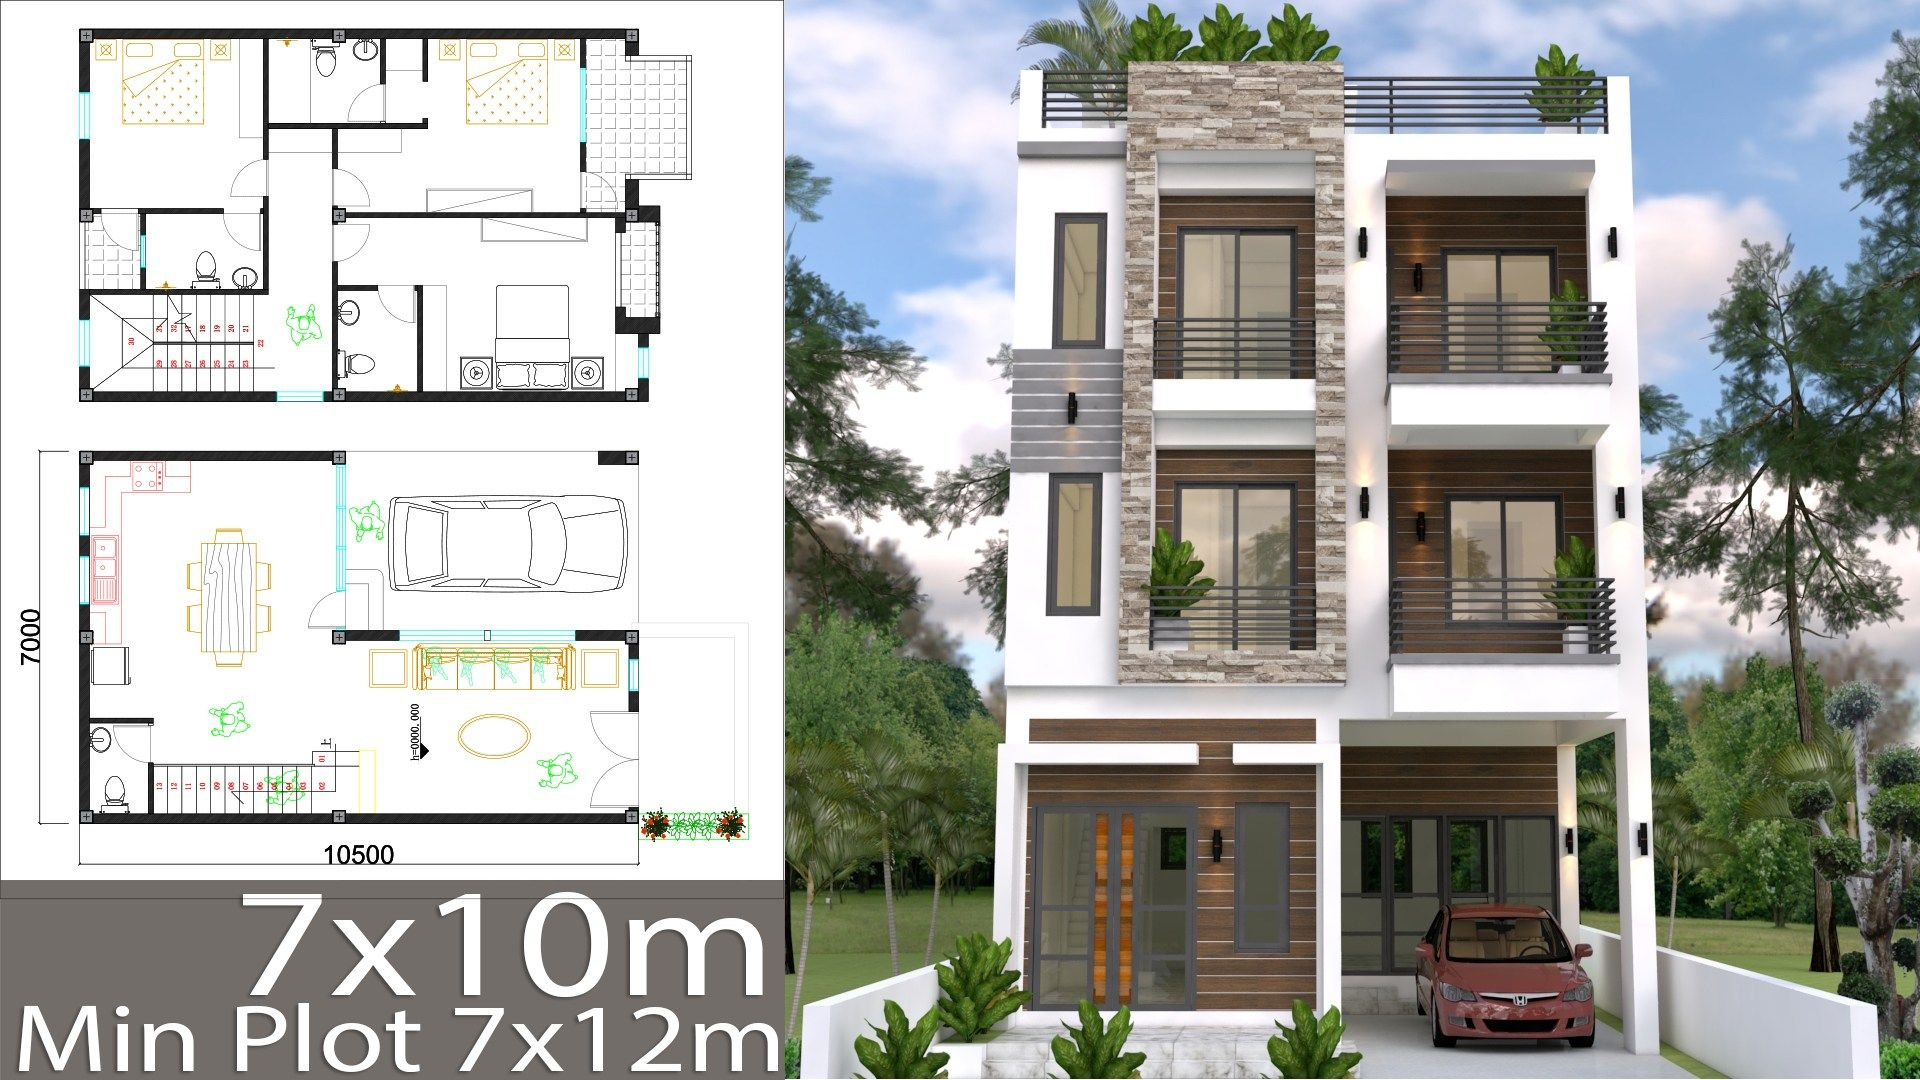 Home Design Plan 7x10m With 6 Bedrooms Samphoas Plan Modern House Plans Home Design Plan House Layout Plans